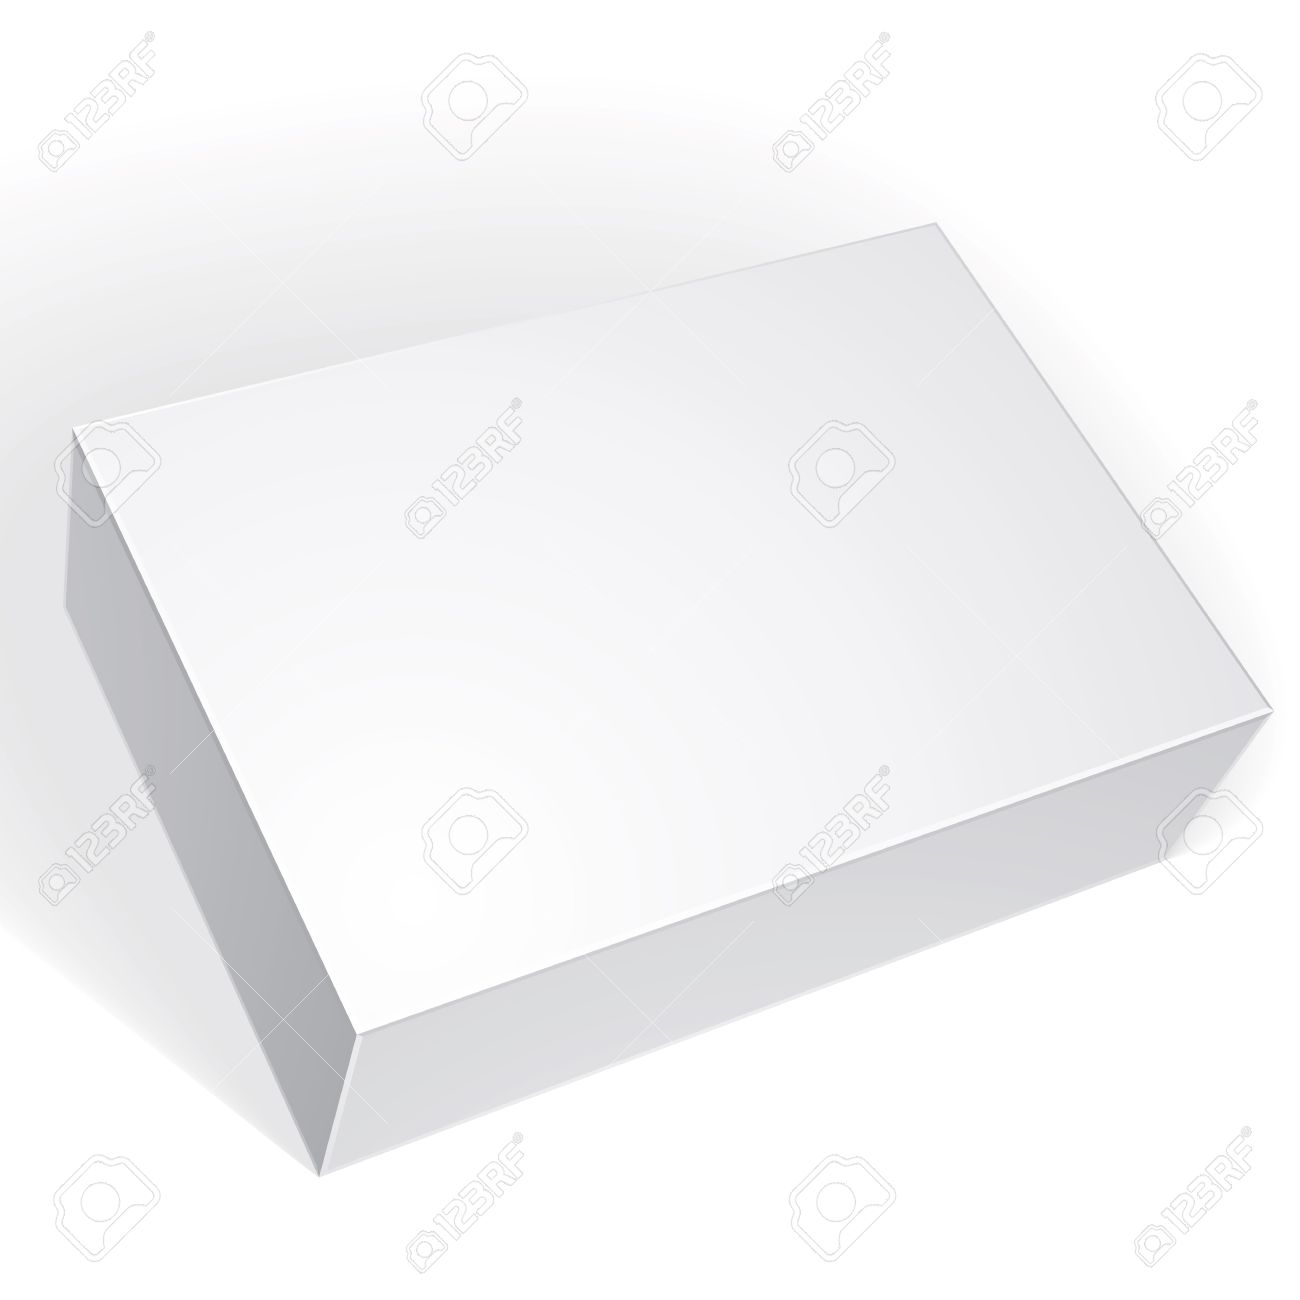 Package white box design isolated on white background, template for your package design, put your image over the box in multiply mode, vector illustration eps 8. - 36018980